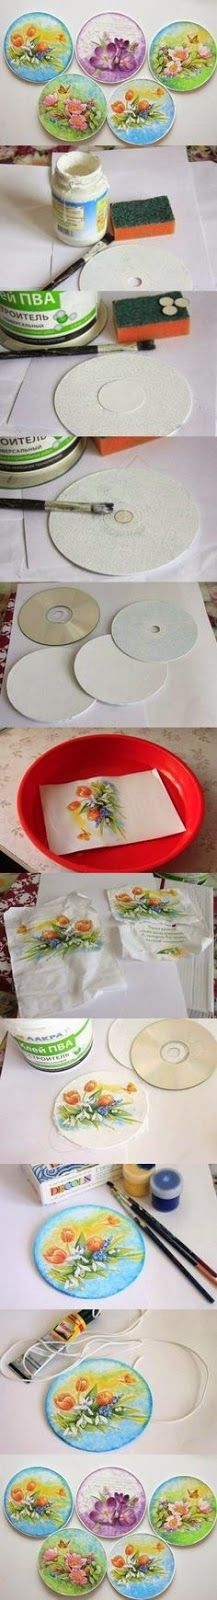 Using Old CDs